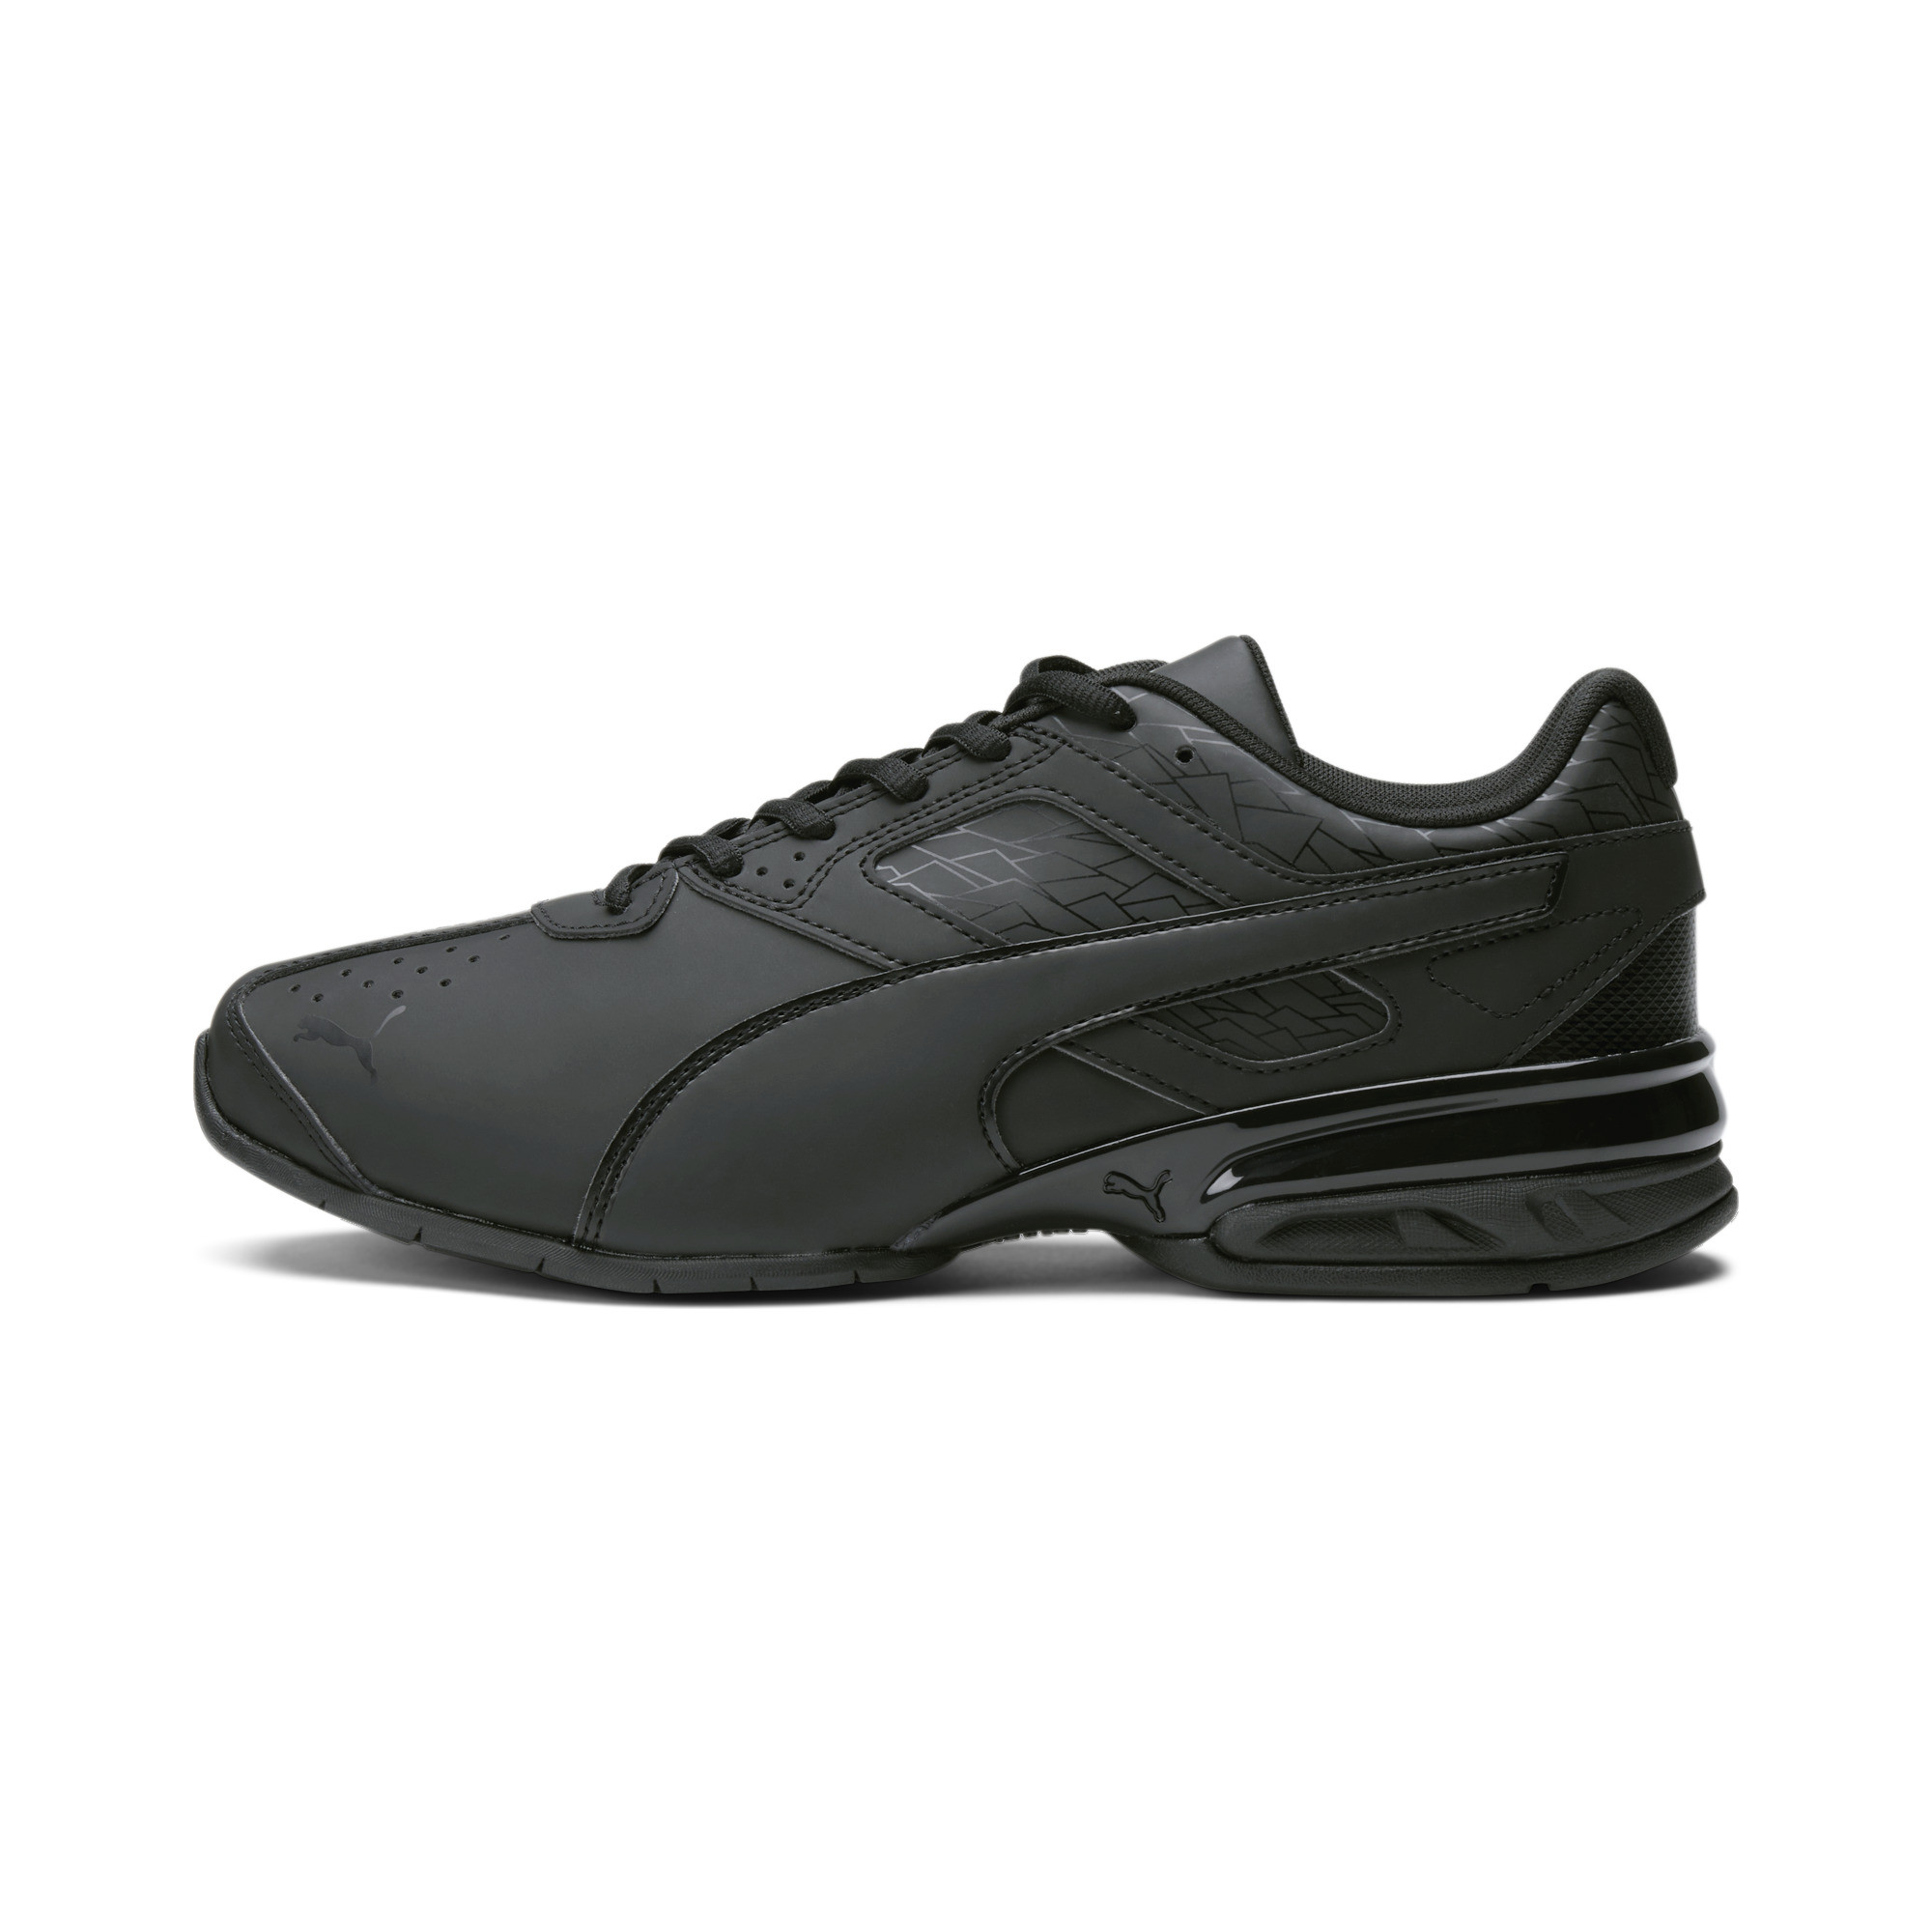 PUMA-Tazon-6-Fracture-FM-Men-039-s-Sneakers-Men-Shoe-Running thumbnail 9